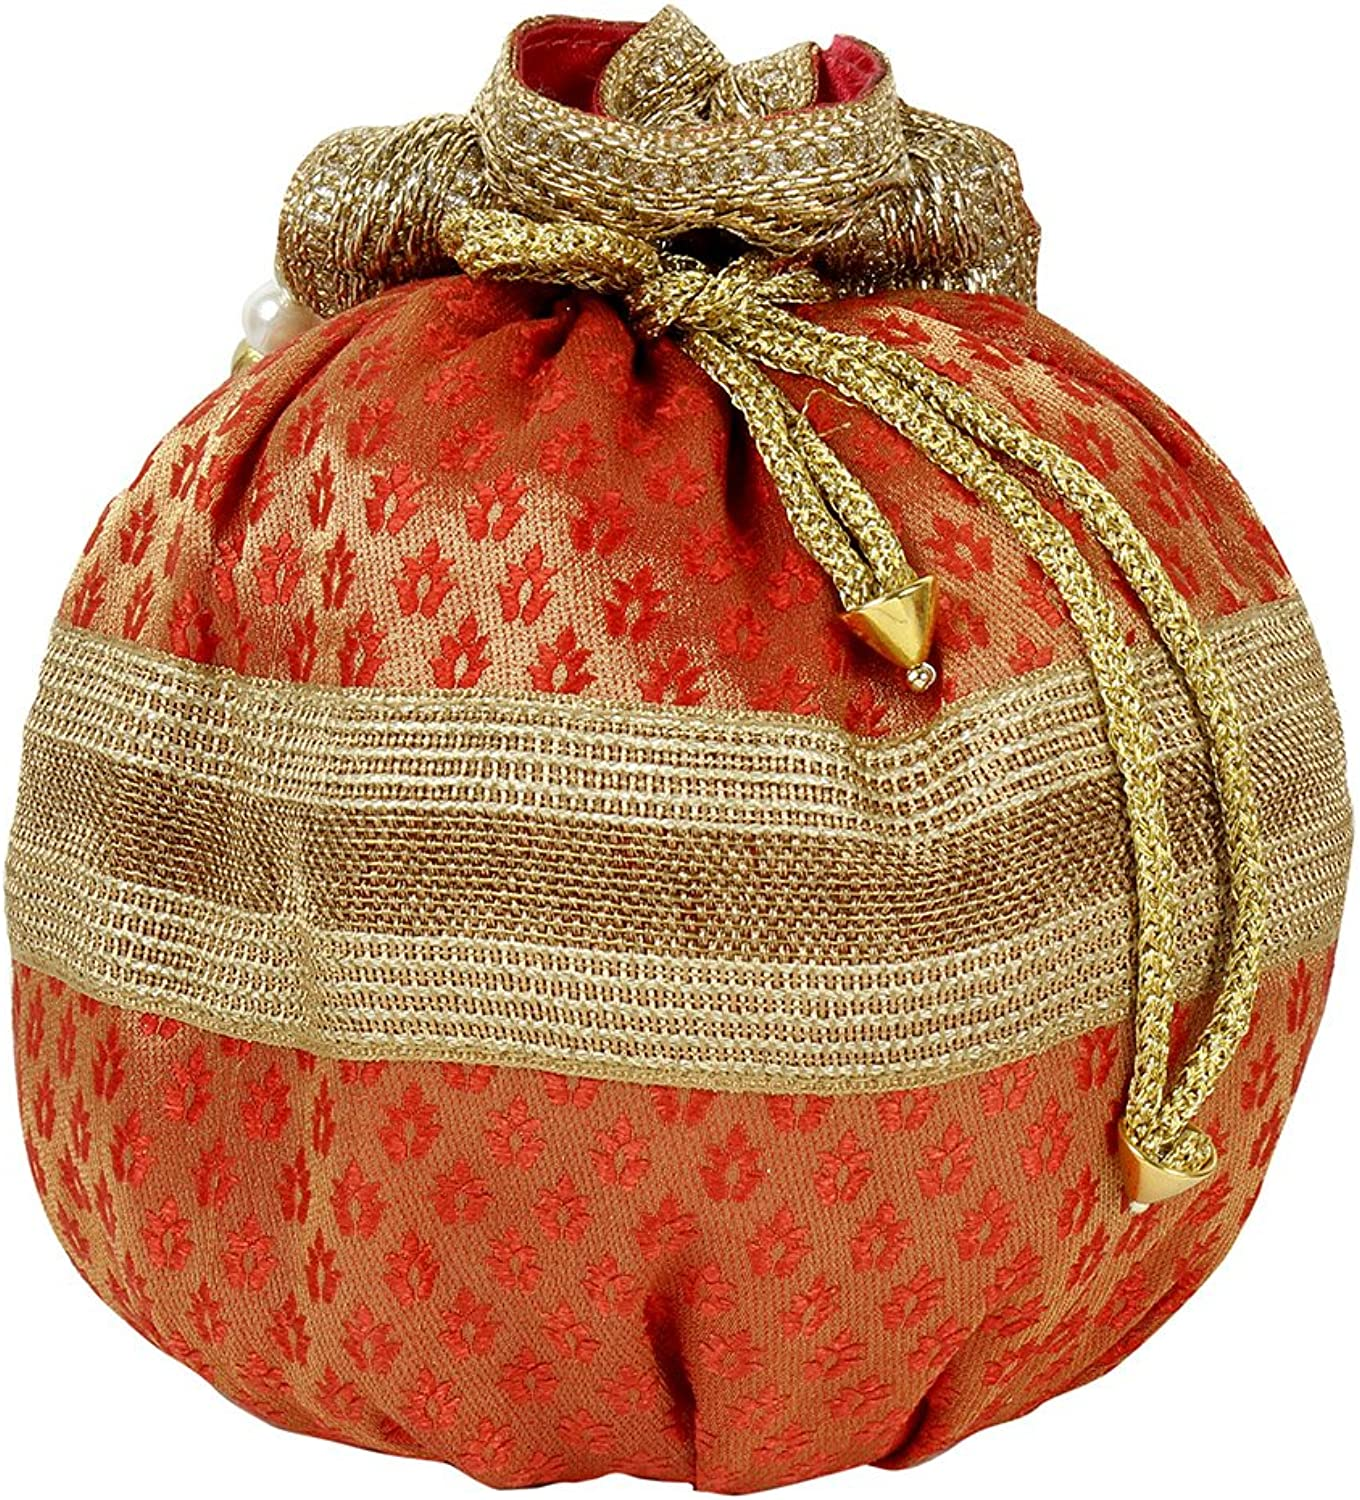 Purse Collection Potli Bag Wedding Purse Pouch Indian Party Hand Traditional Ethnic Embroidered Red color For Women